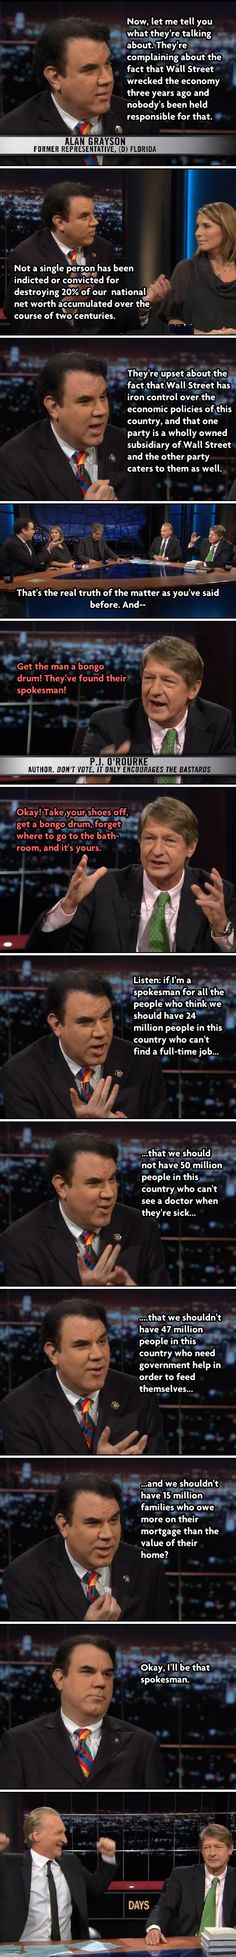 All of #ows summed up in one exchange between Alan Grayson and PJ O'Rourke